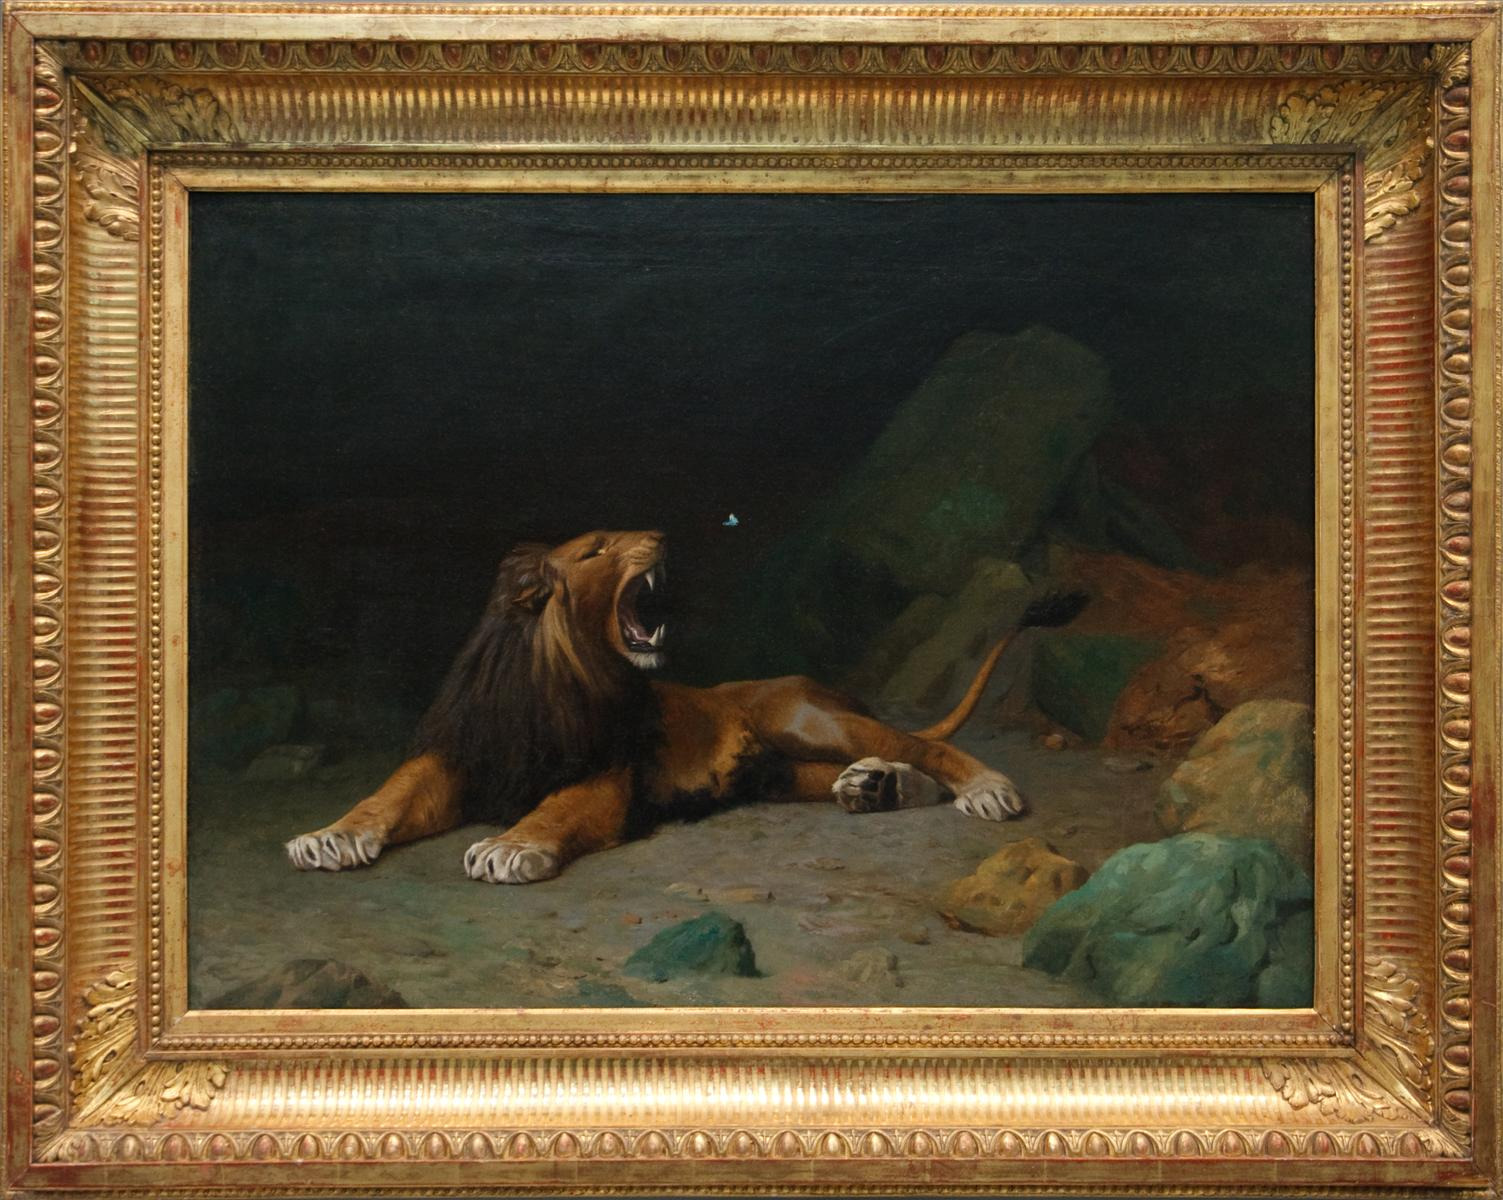 http://uploads4.wikipaintings.org/images/jean-leon-gerome/lion-snapping-at-a-butterfly.jpg!HD.jpg